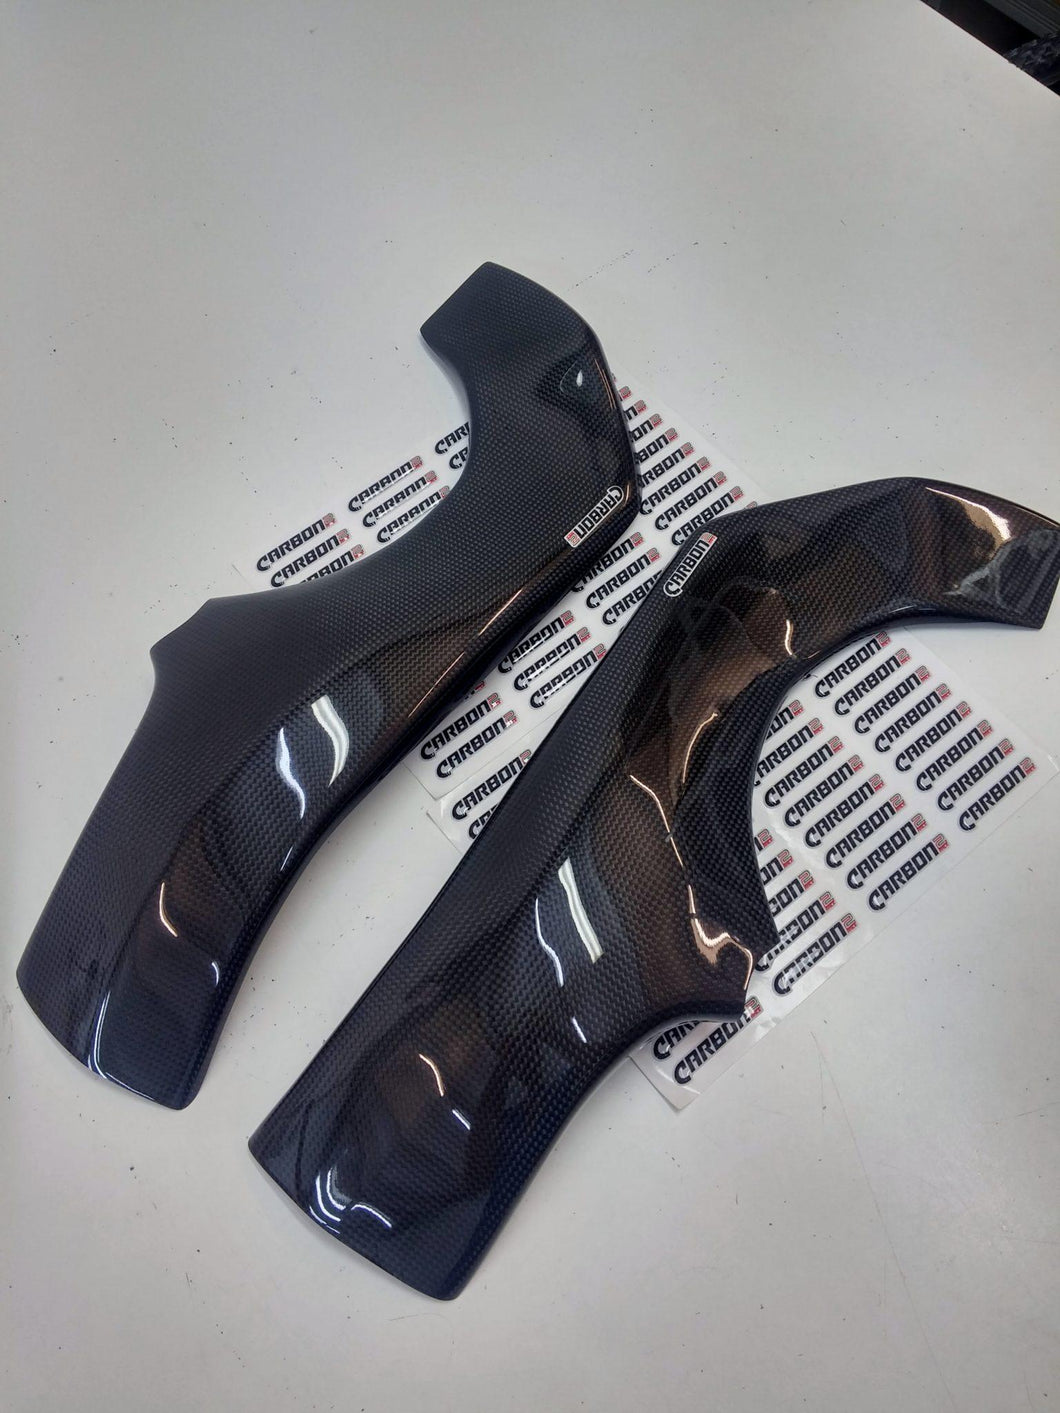 CARBON2RACE YAMAHA FZ8 2010-2015 CARBON FIBER FRAME COVERS